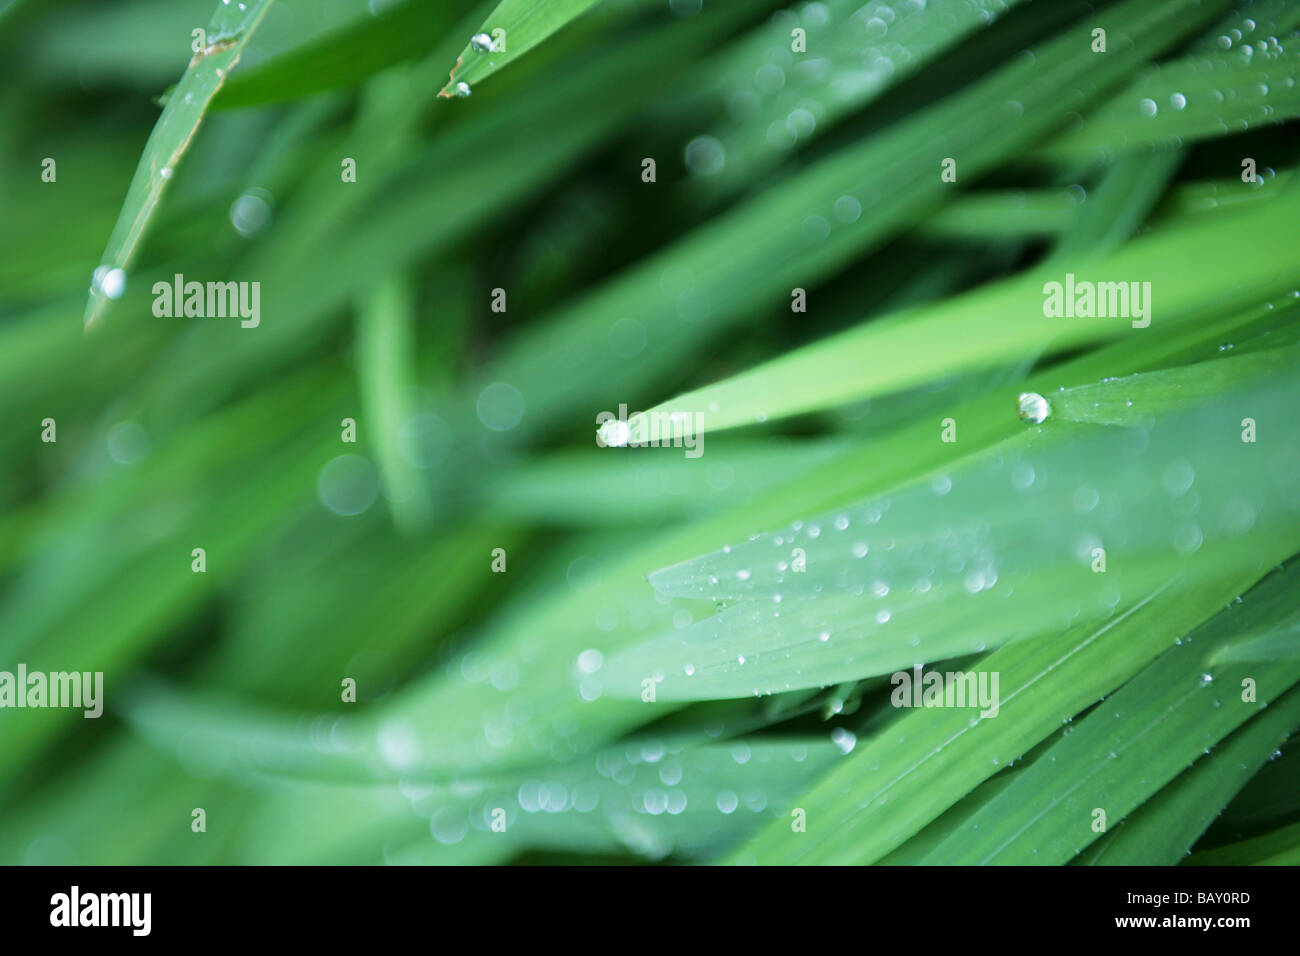 Blades of grass with waterdrops, Close-up - Stock Image